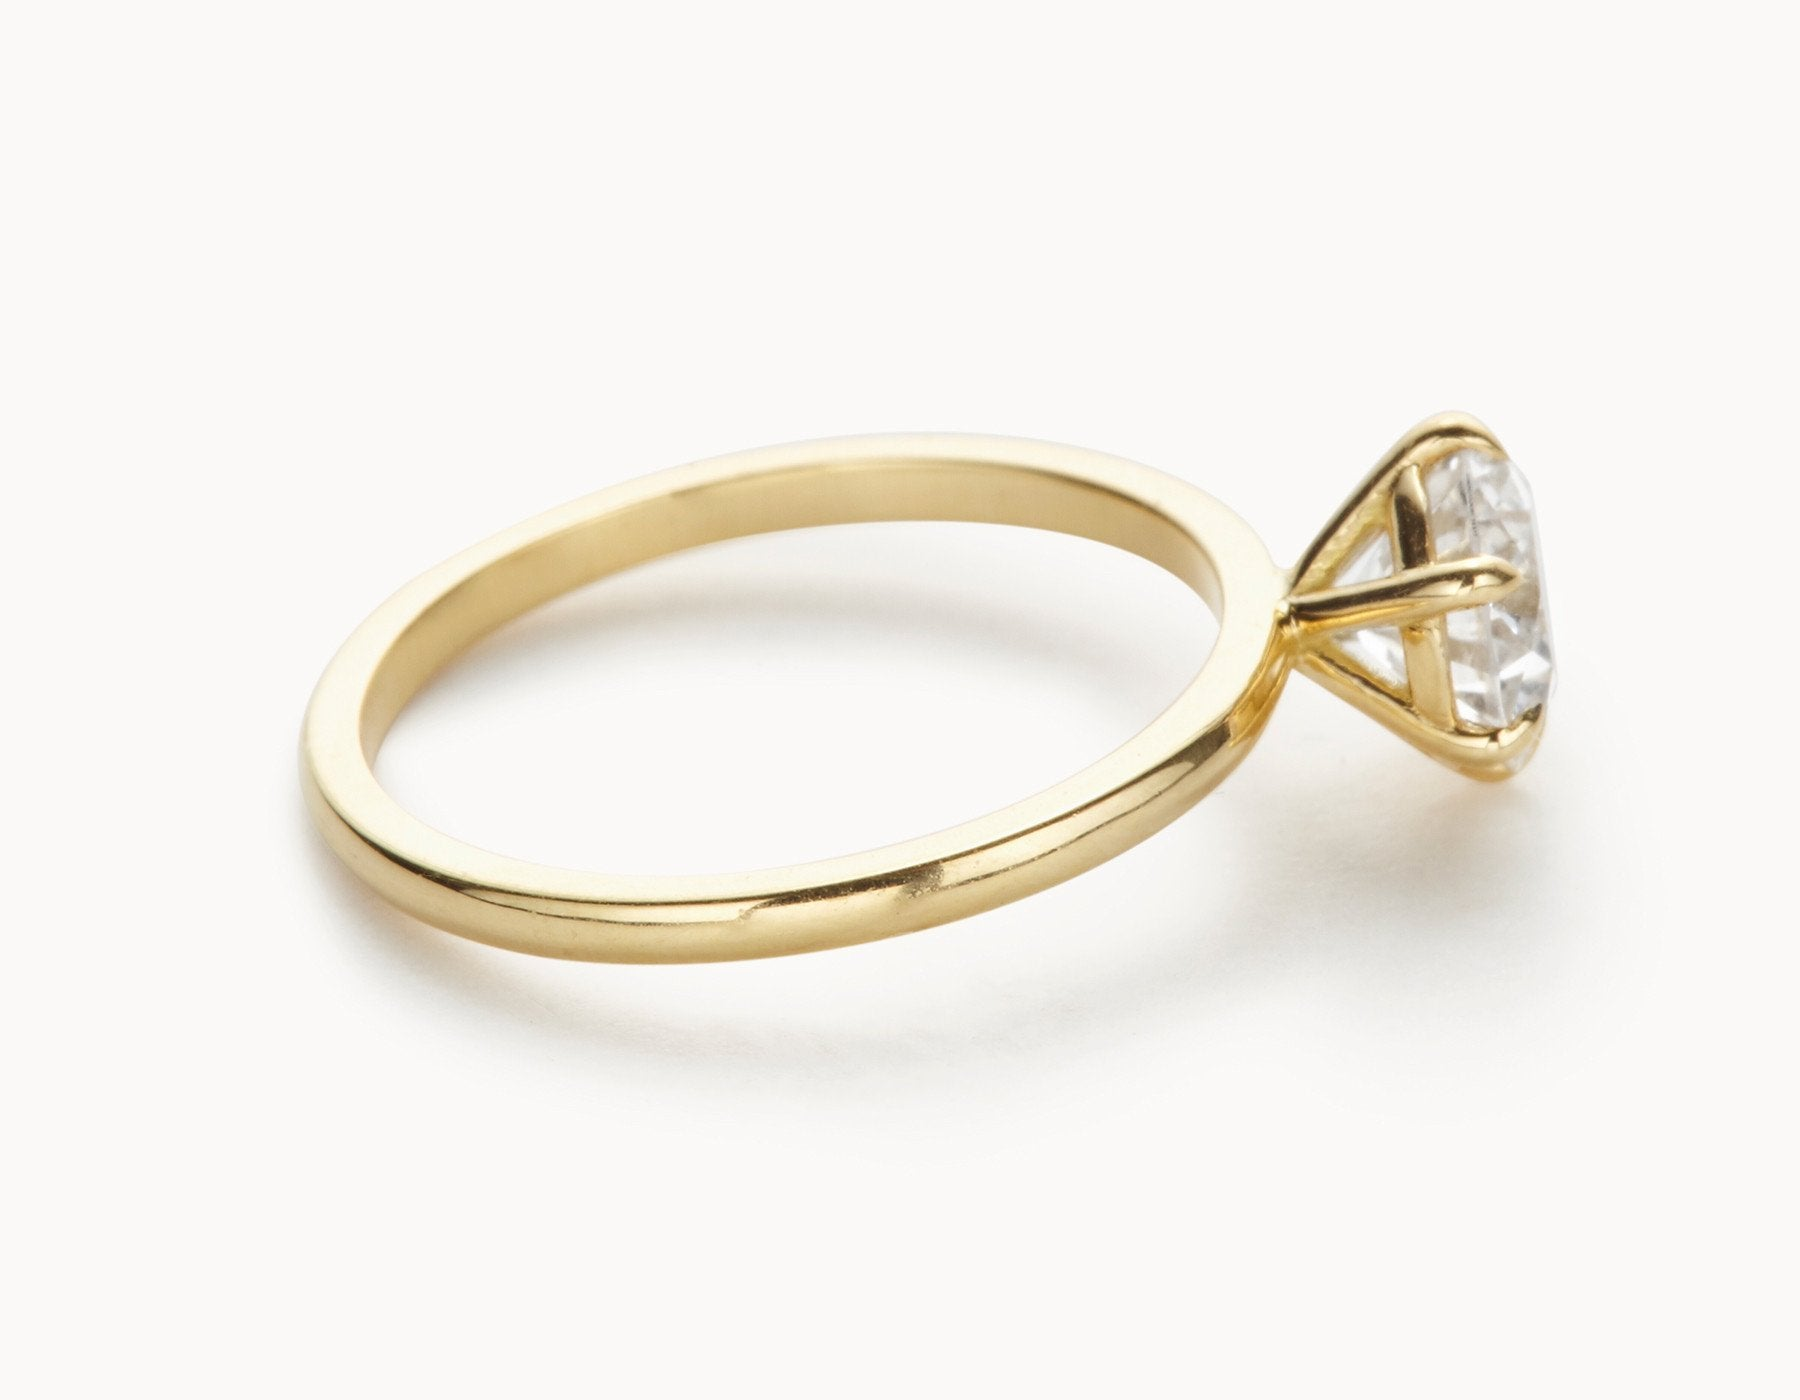 Modern 18k Yellow Gold Solitaire Round Brilliant Diamond Engagement Ring